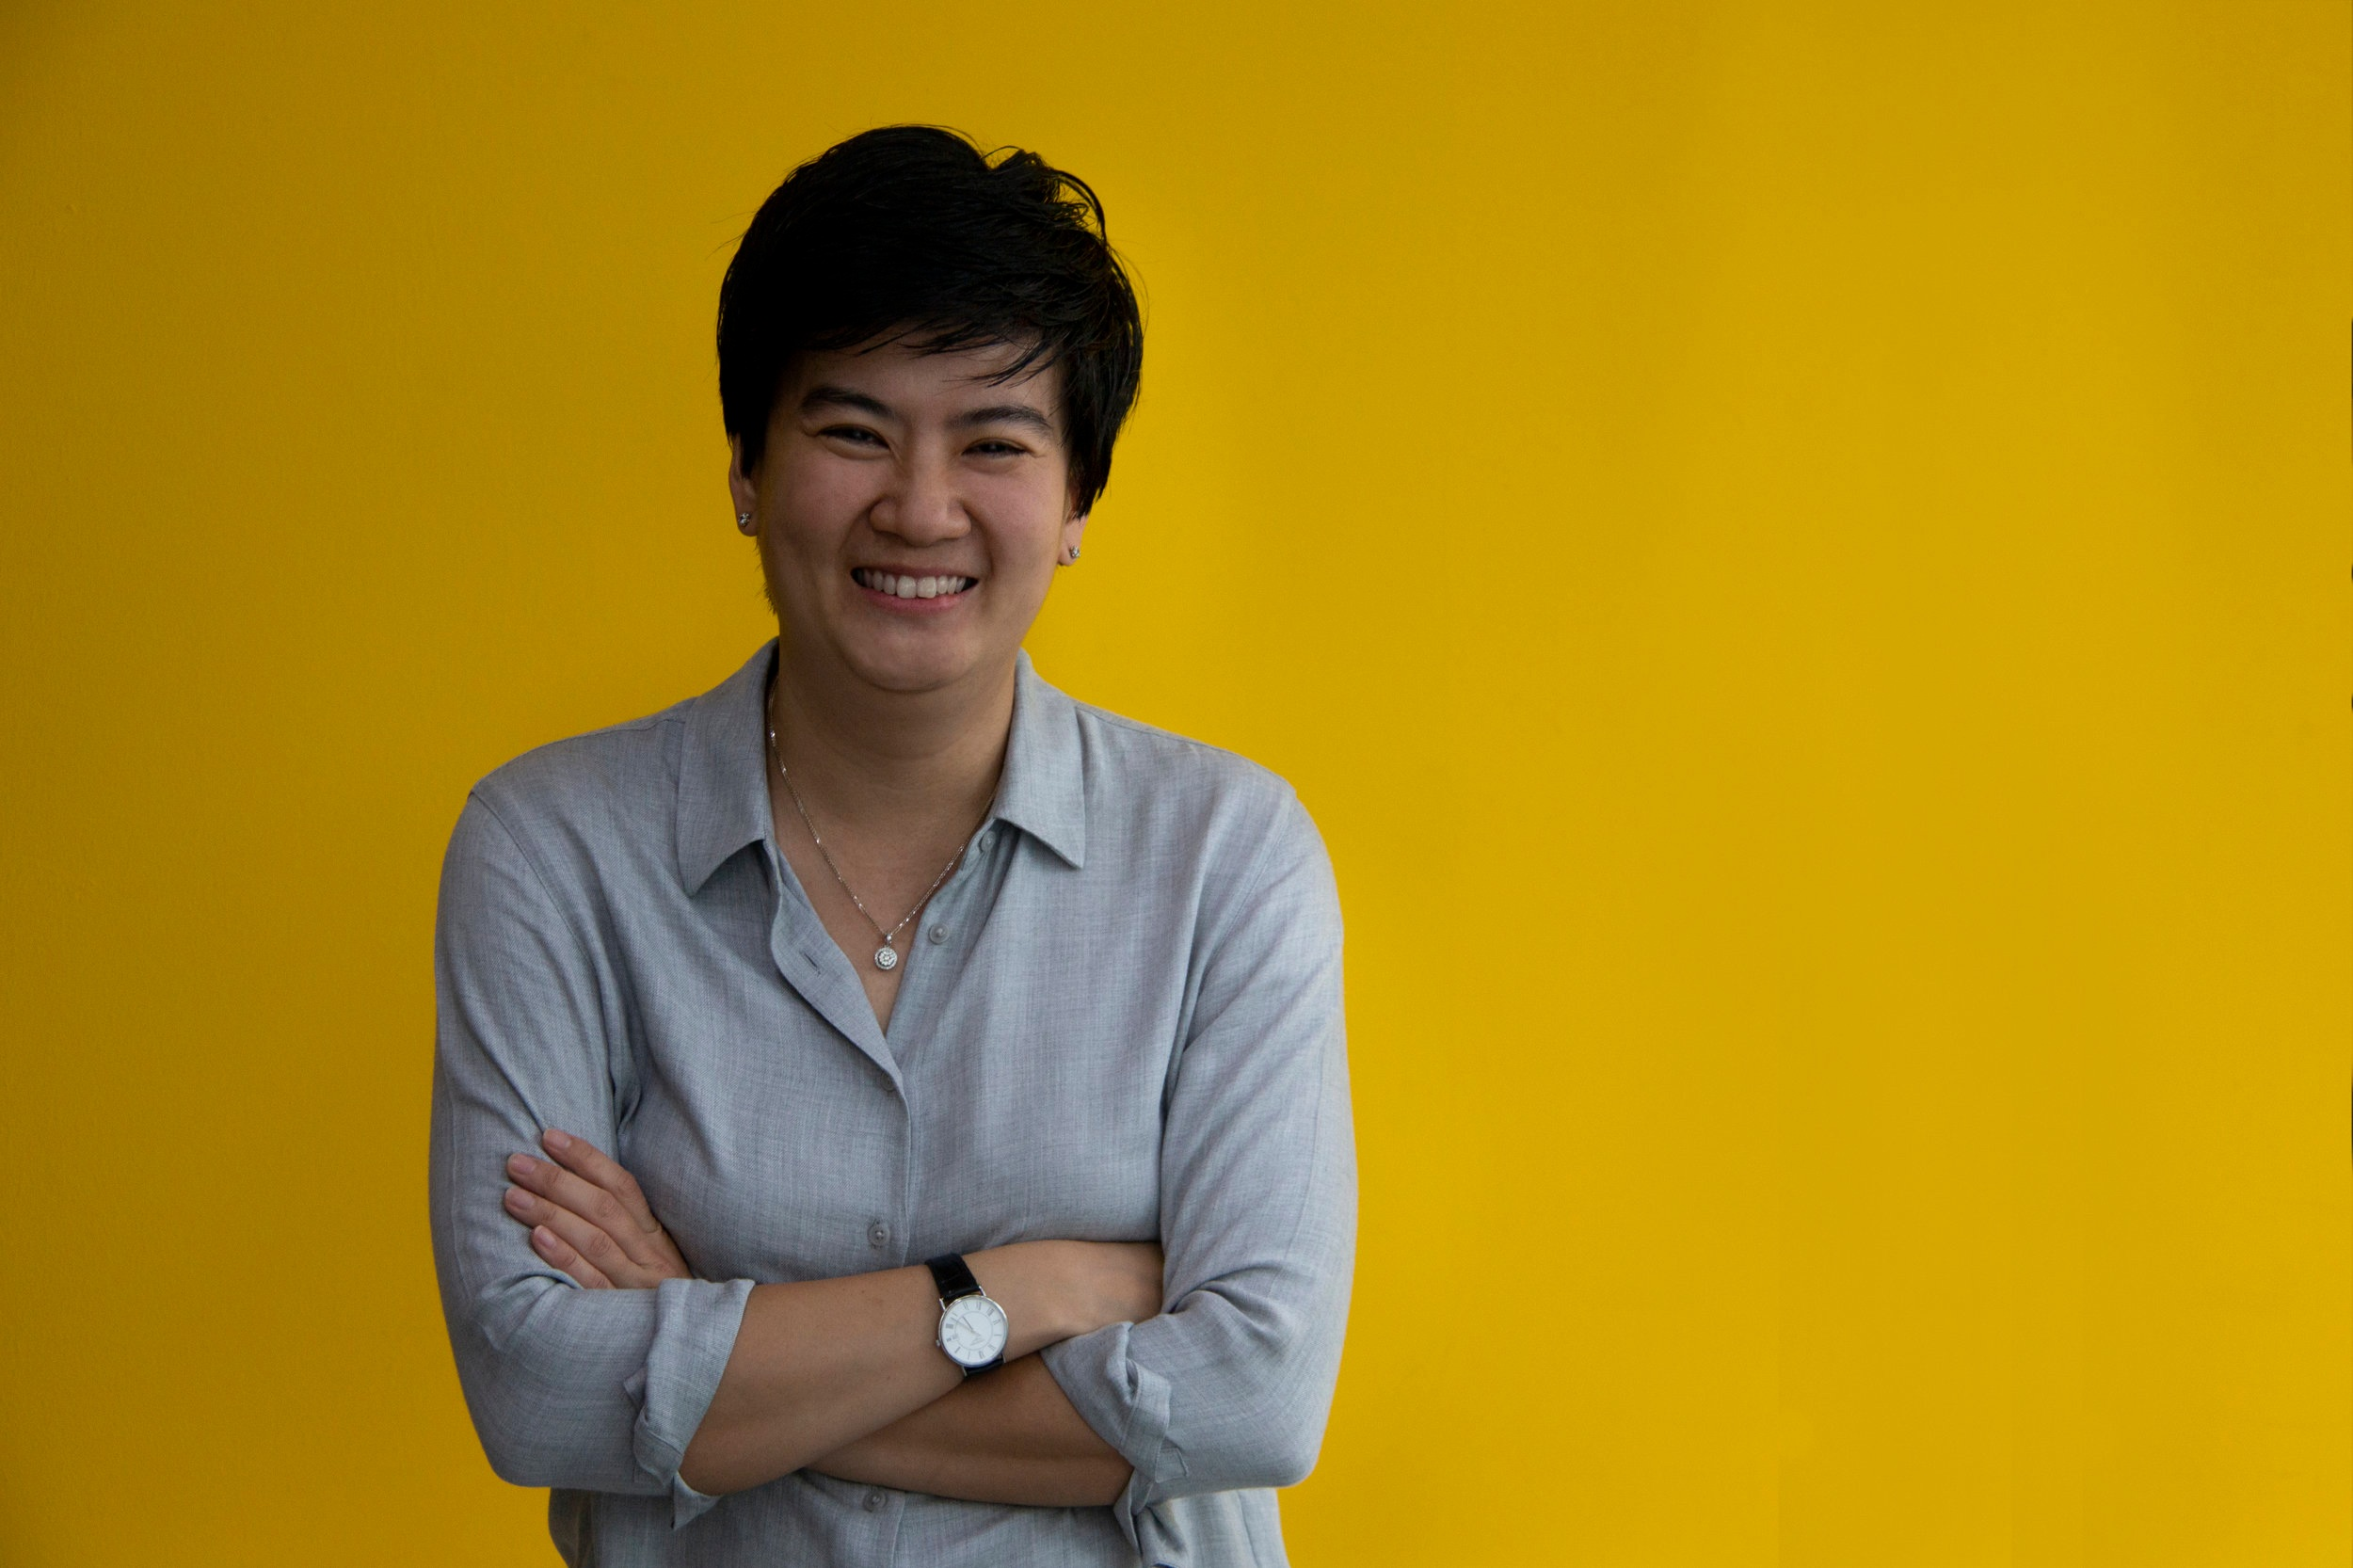 female led & female driven - Founded by Pamela Chng in 2011, the Bettr family has grown to encompass a 65% female team.